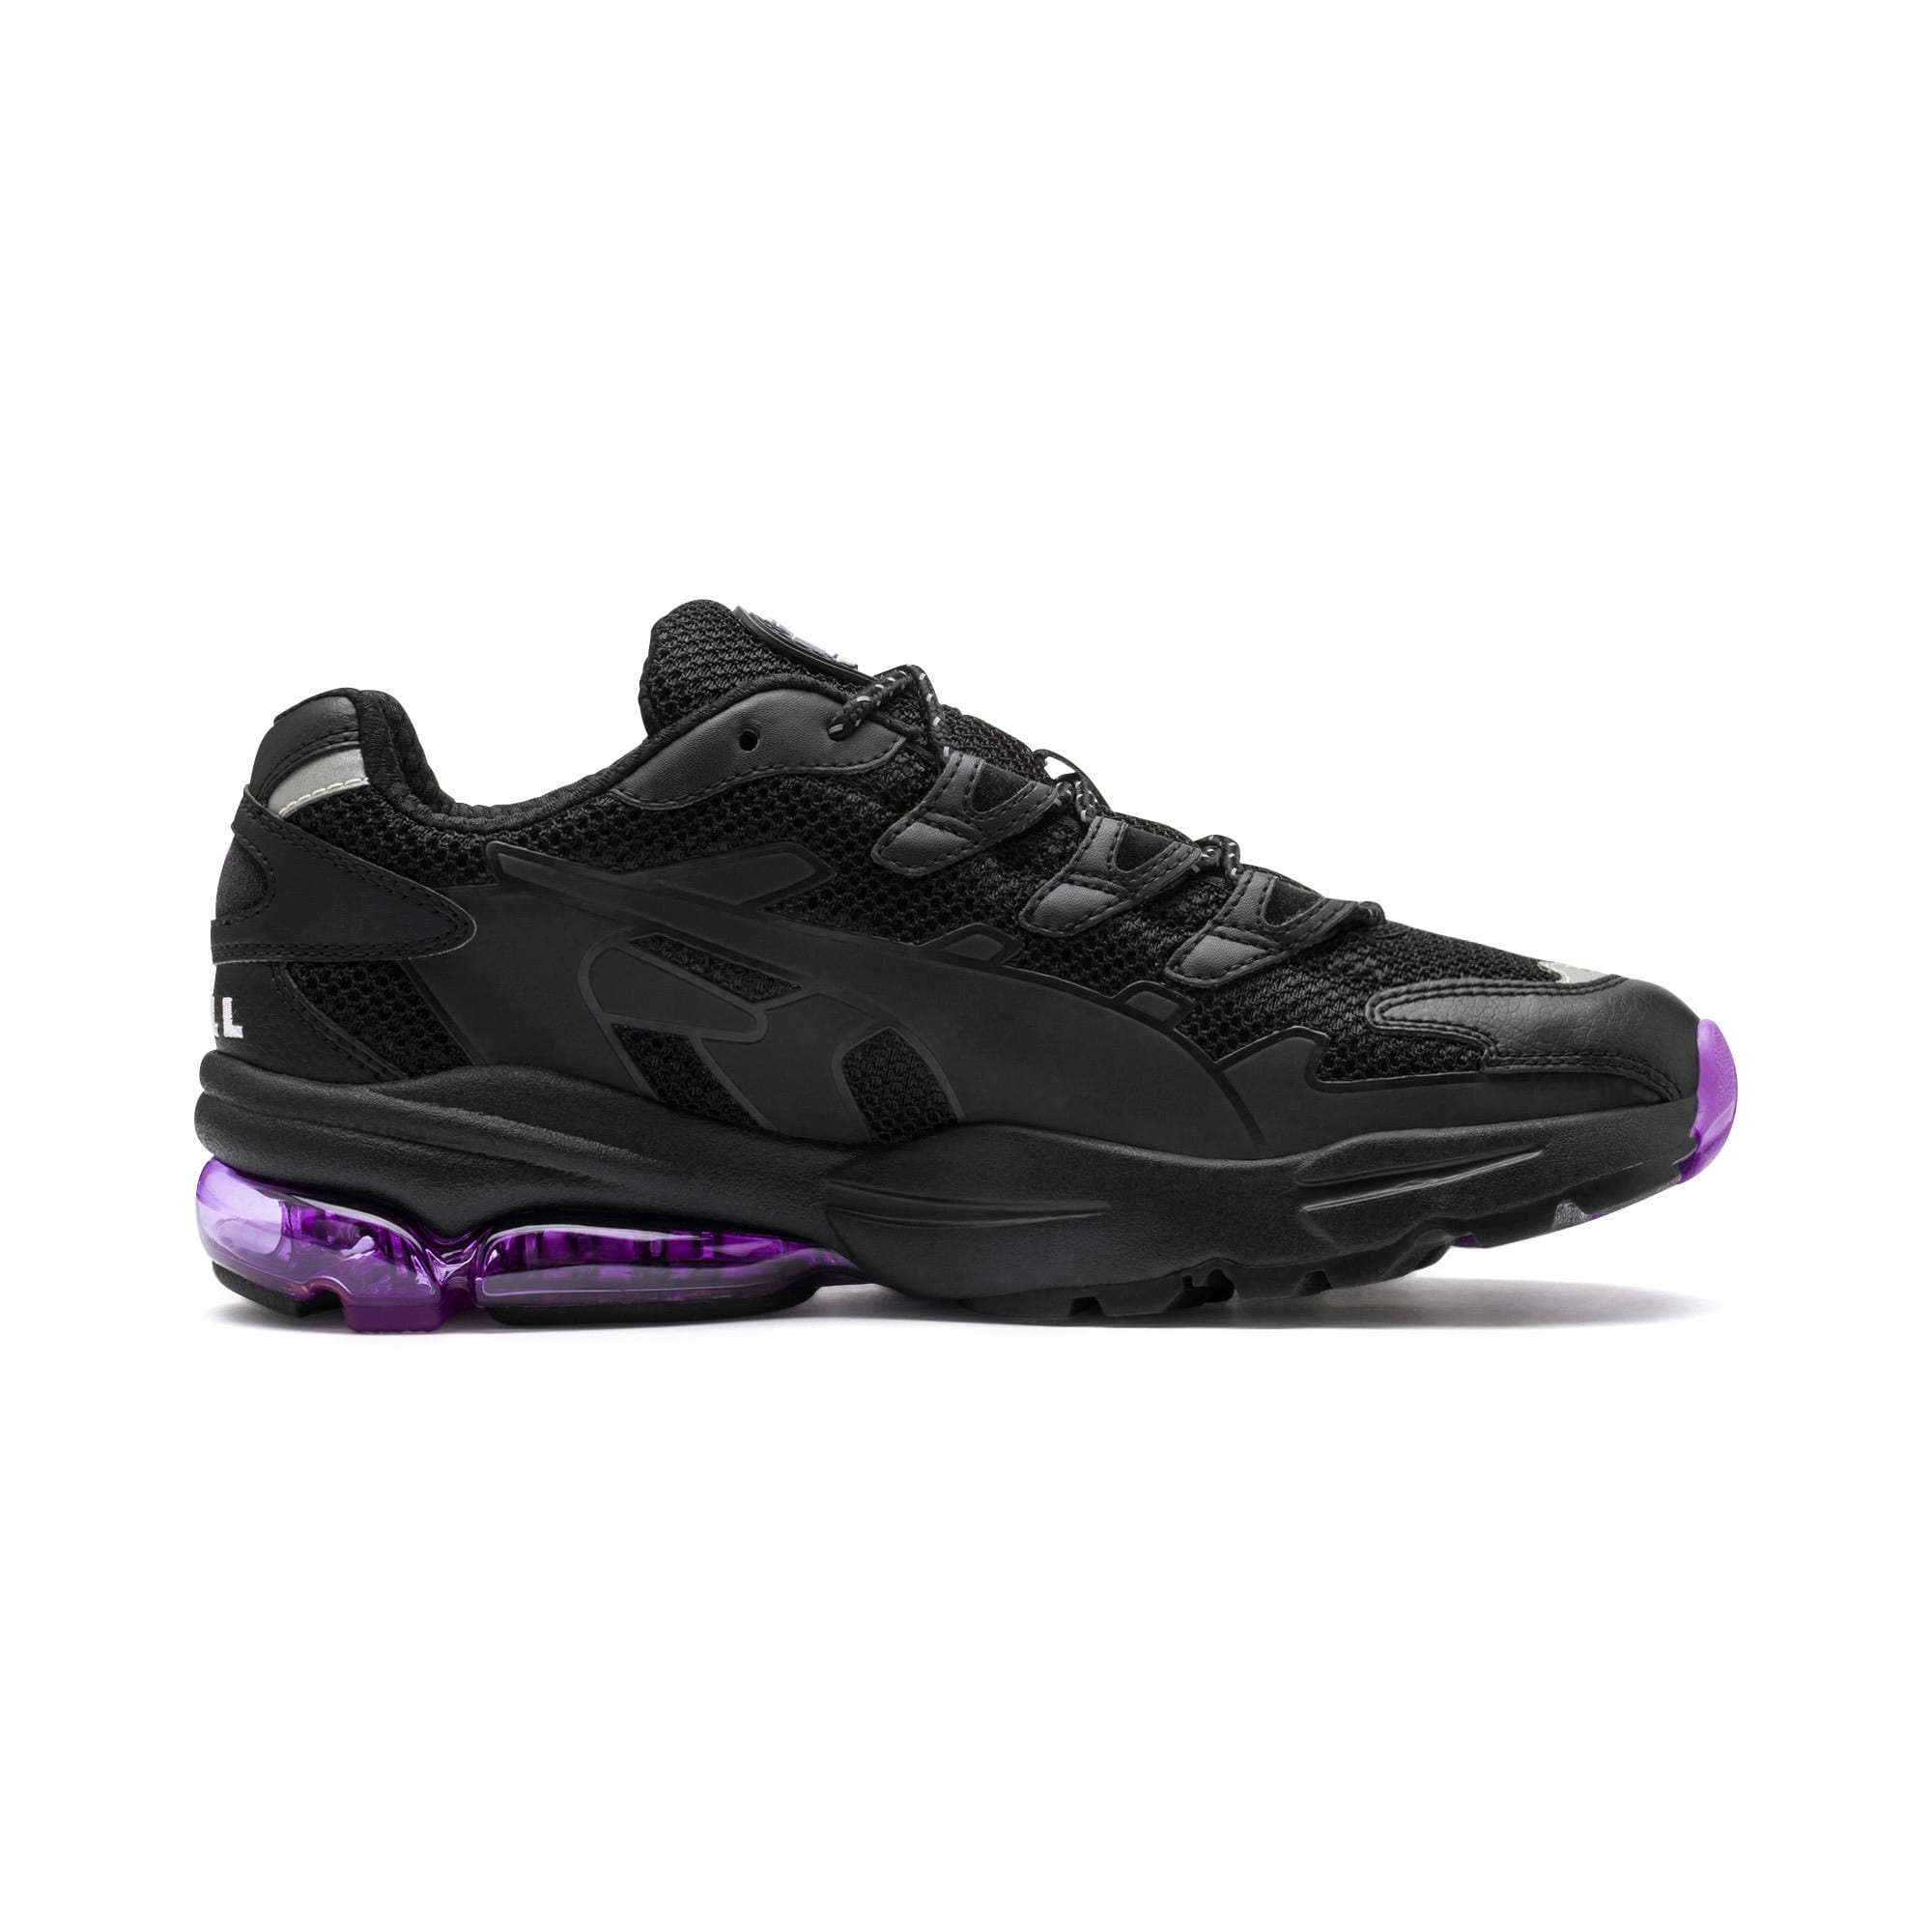 Thumbnail 6 of CELL Alien Kotto sportschoenen, Puma Black-Puma Black, medium